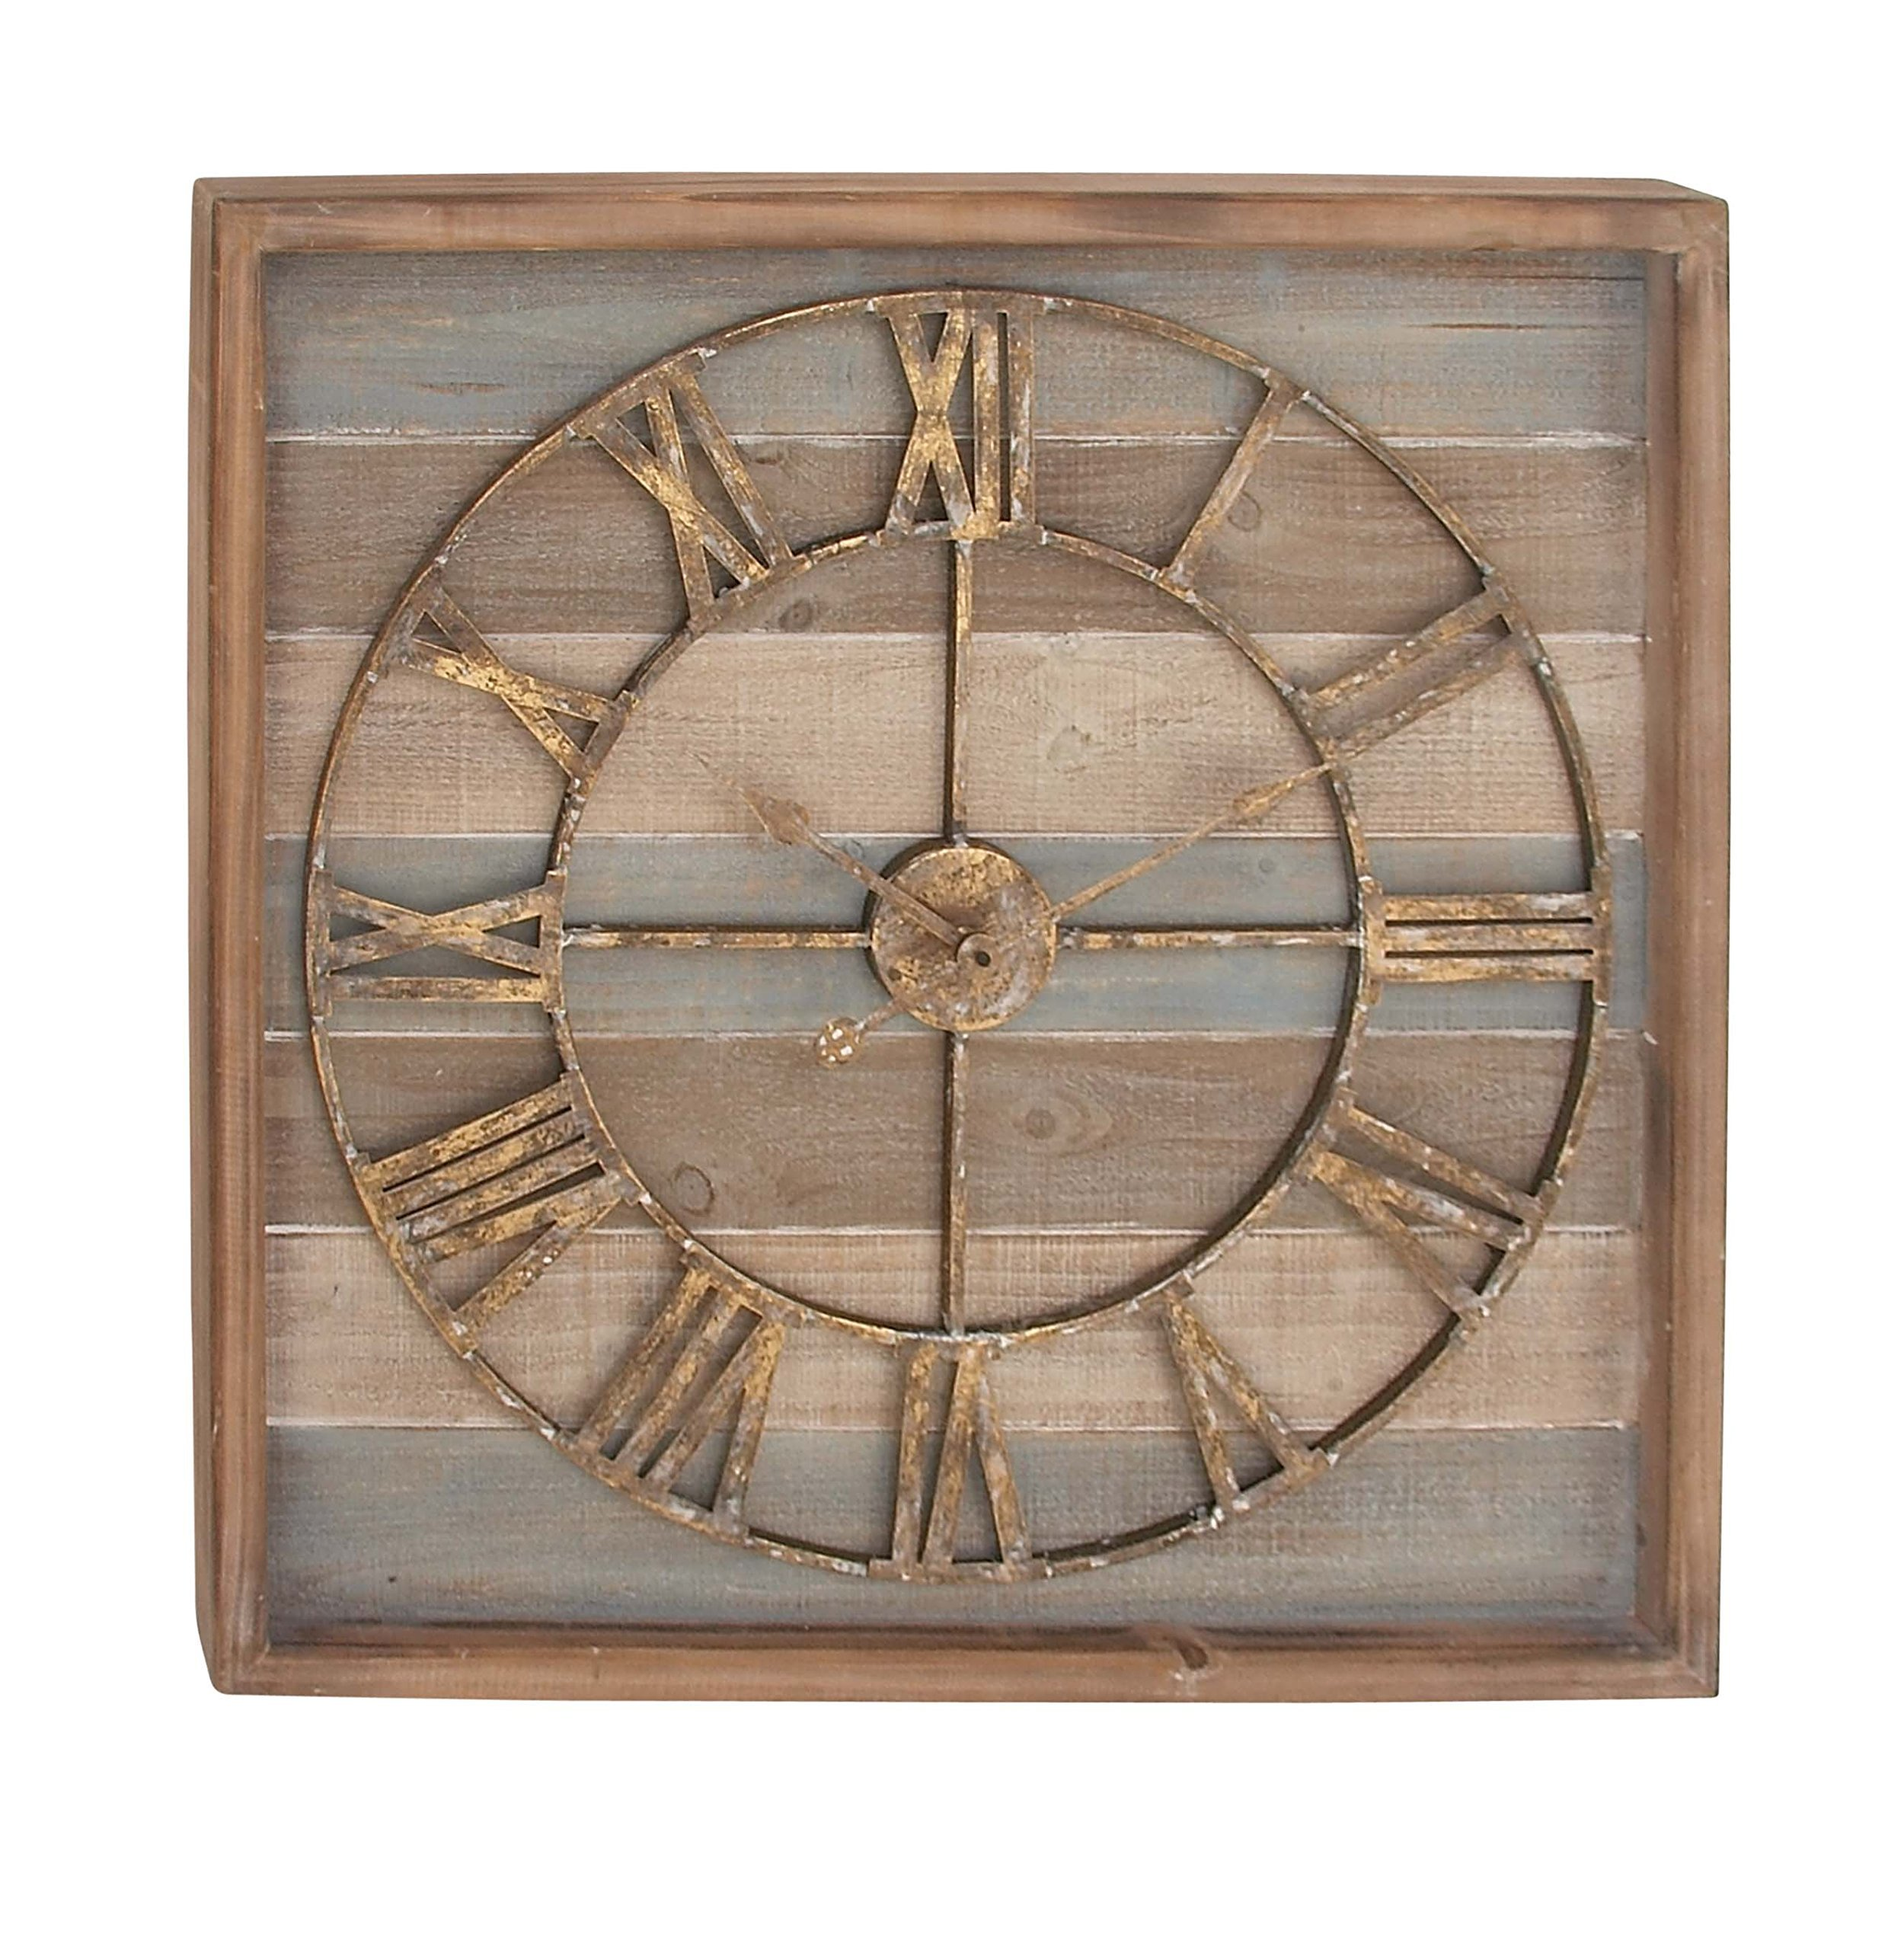 Deco 79 44444 Square Iron and Wood Wall Clock, 30'' x 30'', Brown/White/Cyan